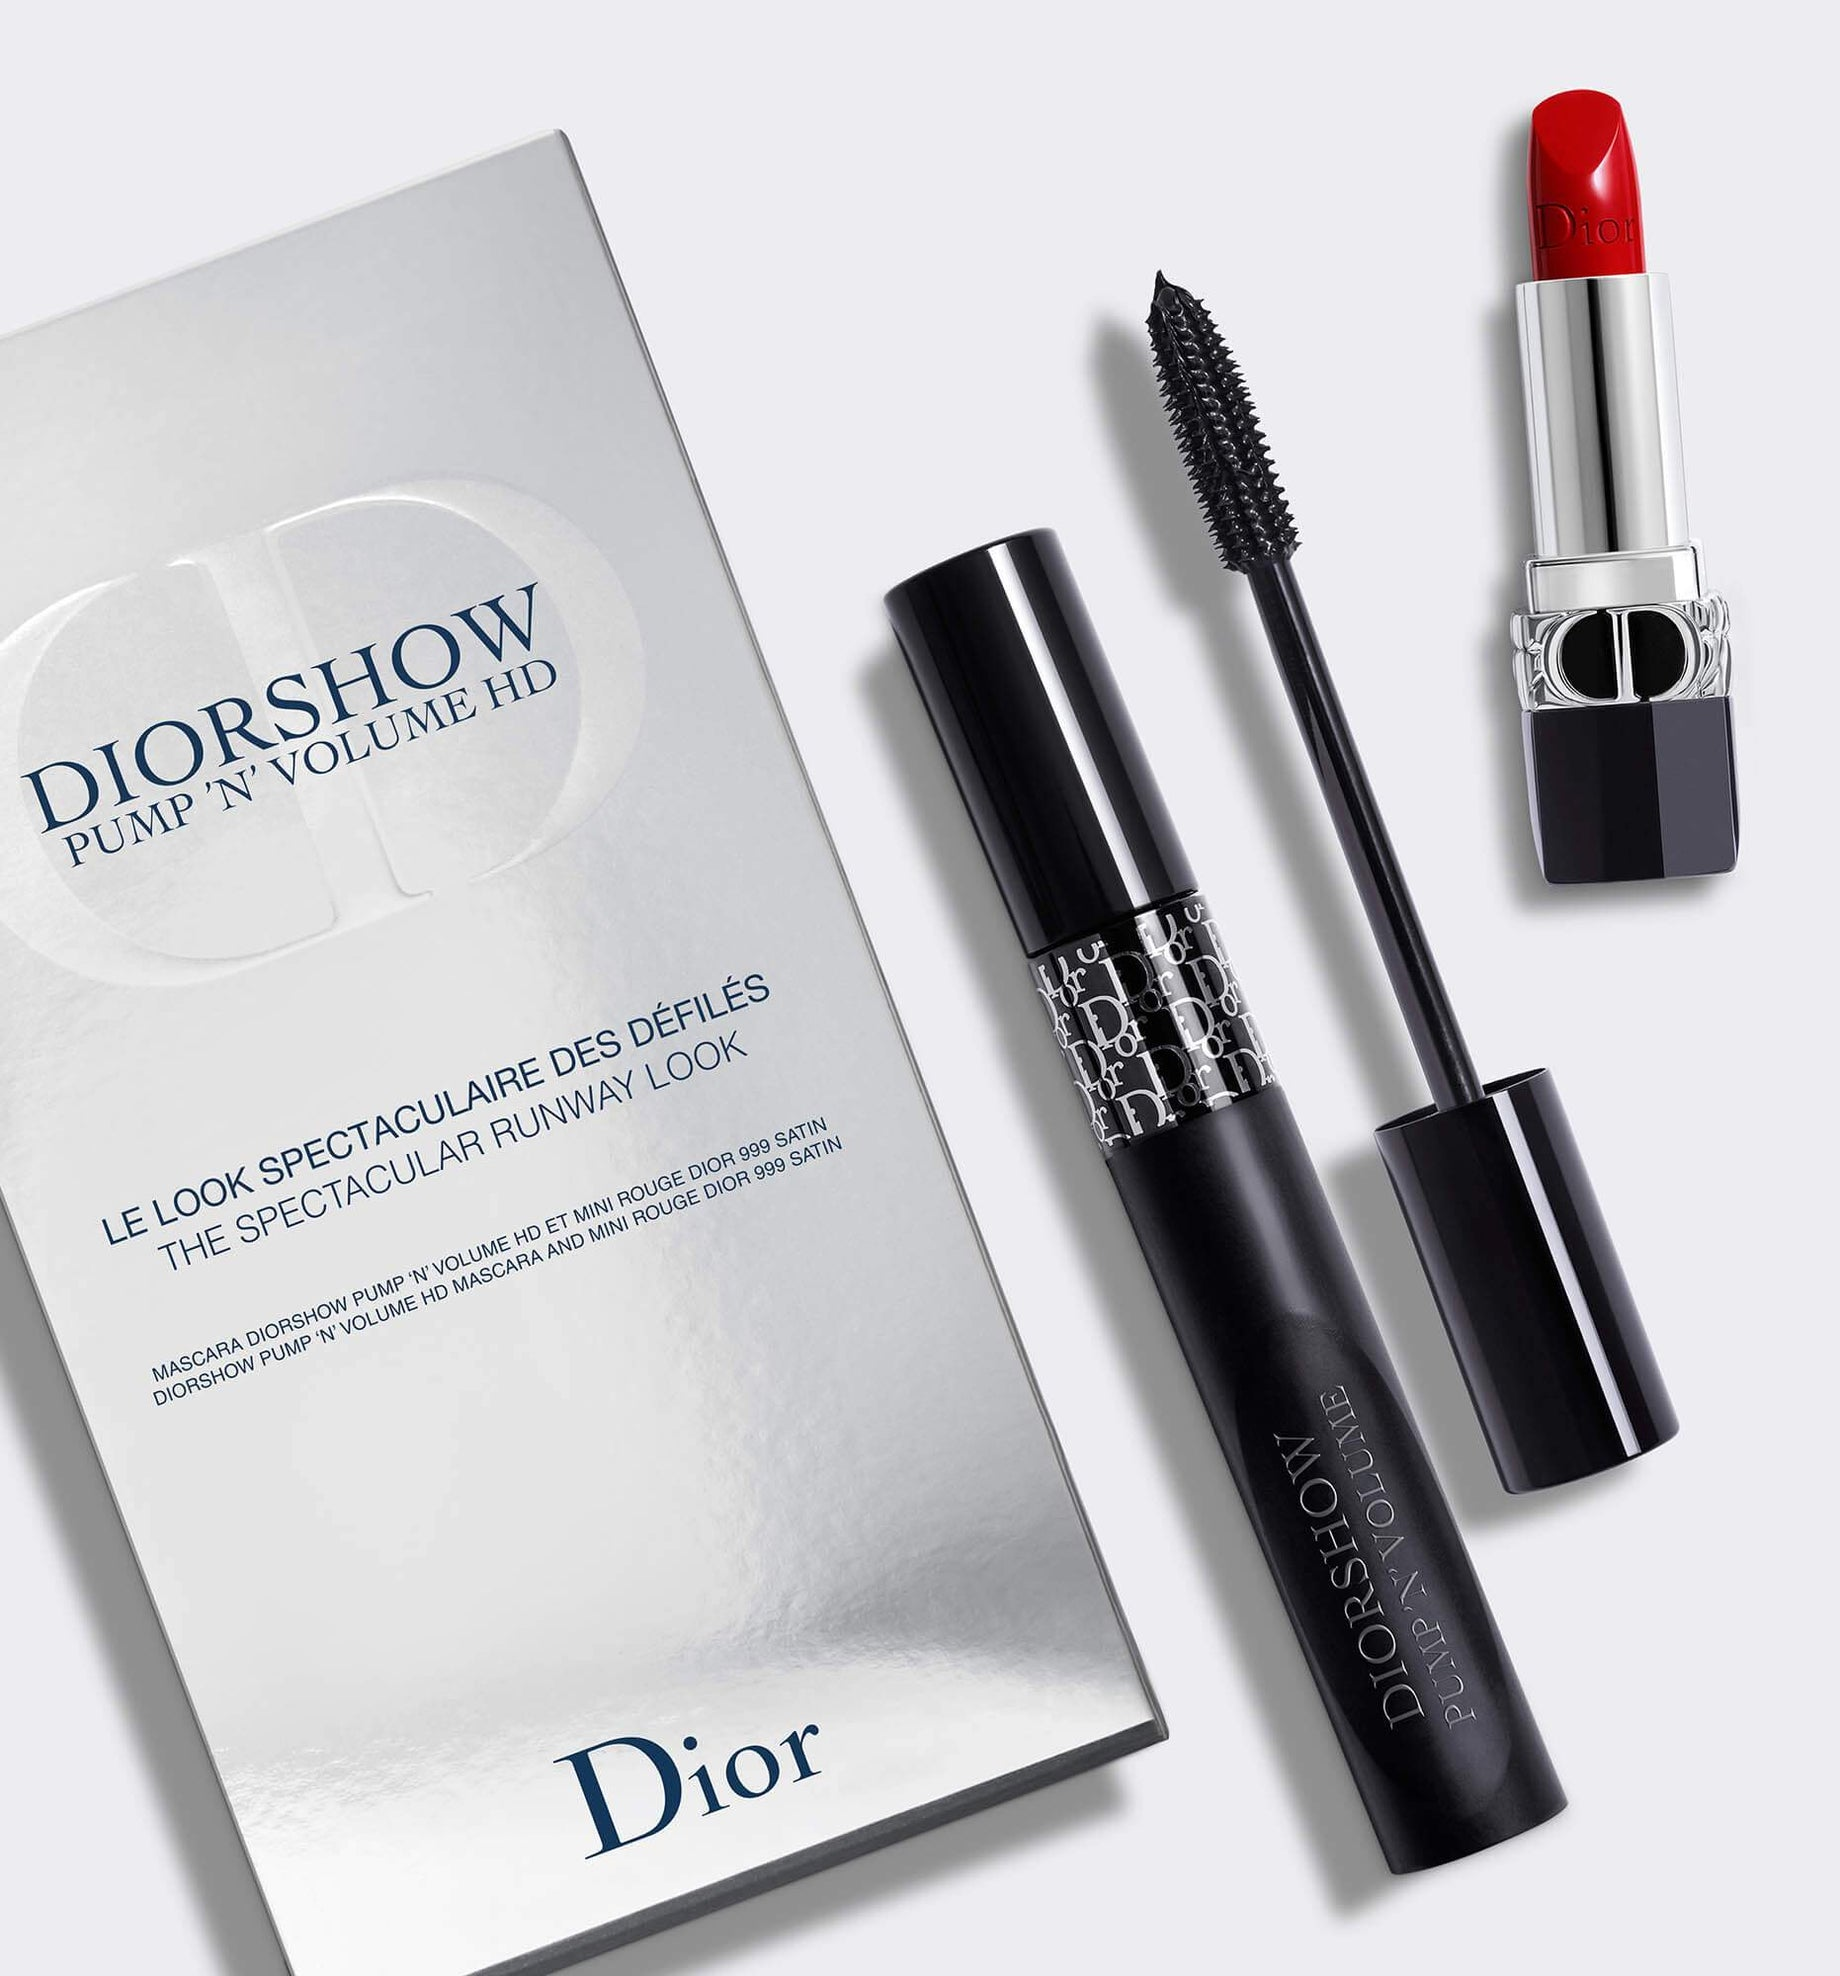 Diorshow Pump 'N' Volume HDMascara and Lipstick Set